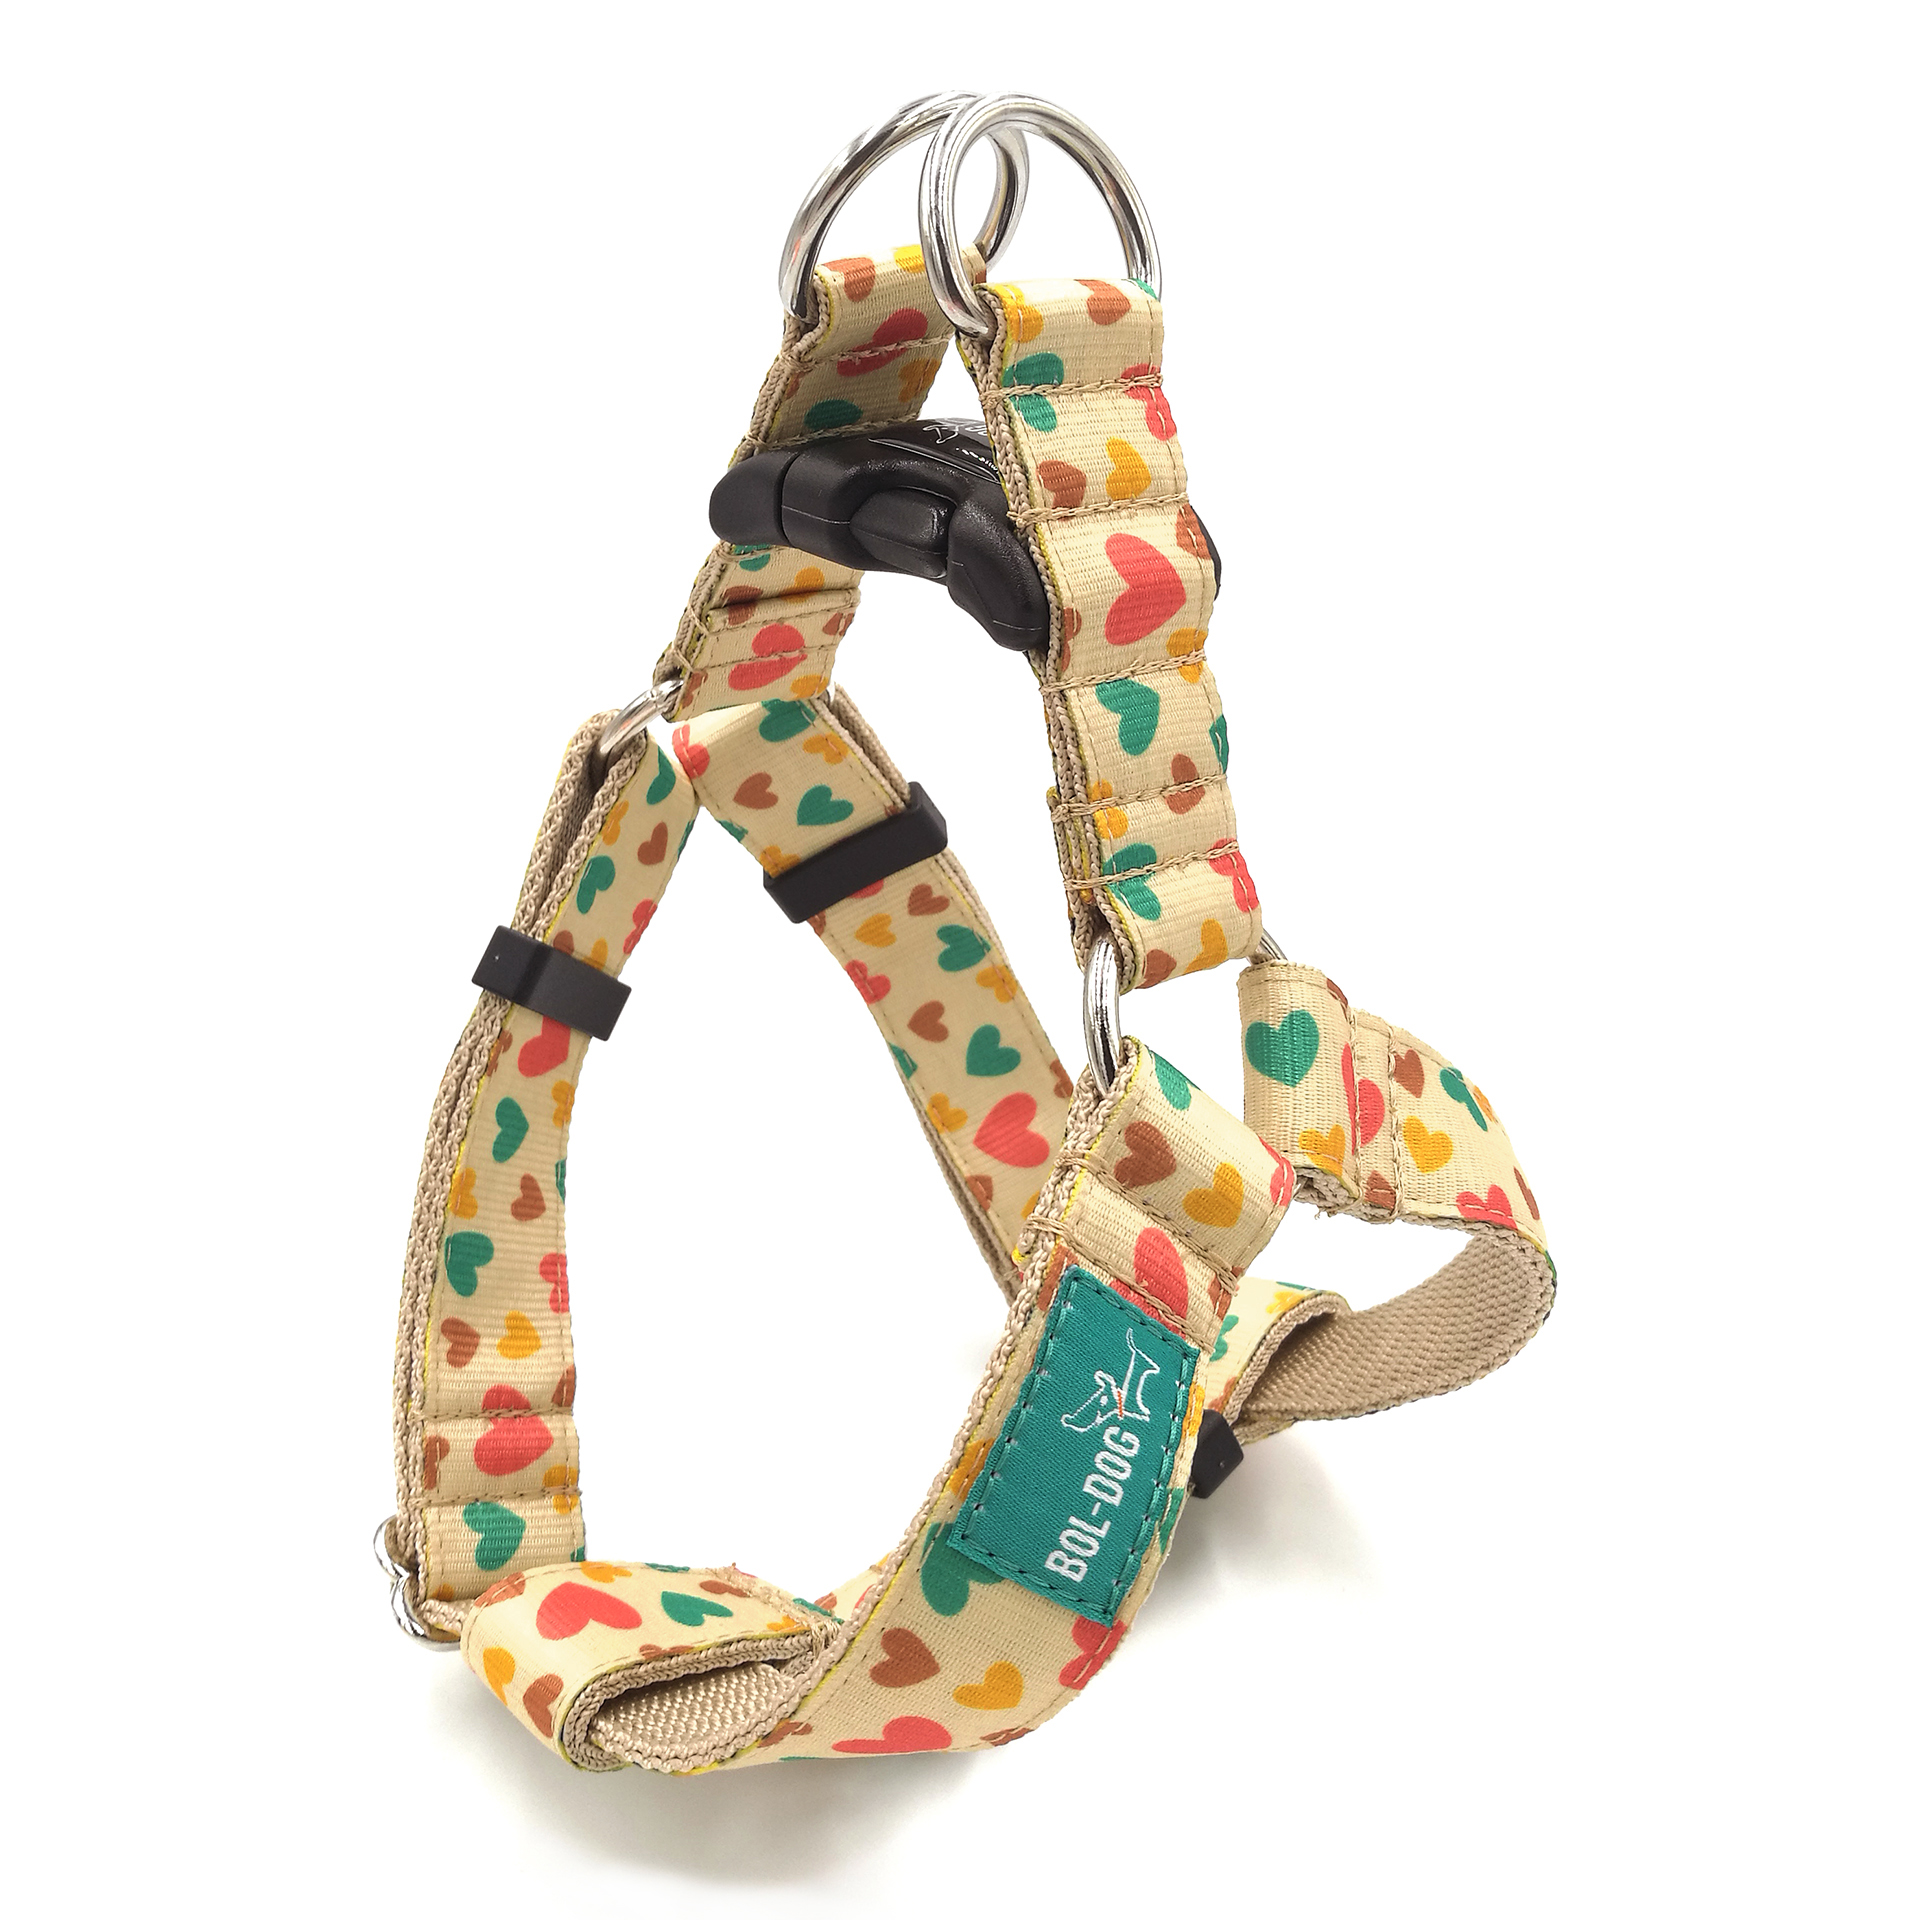 Devotion dog harness